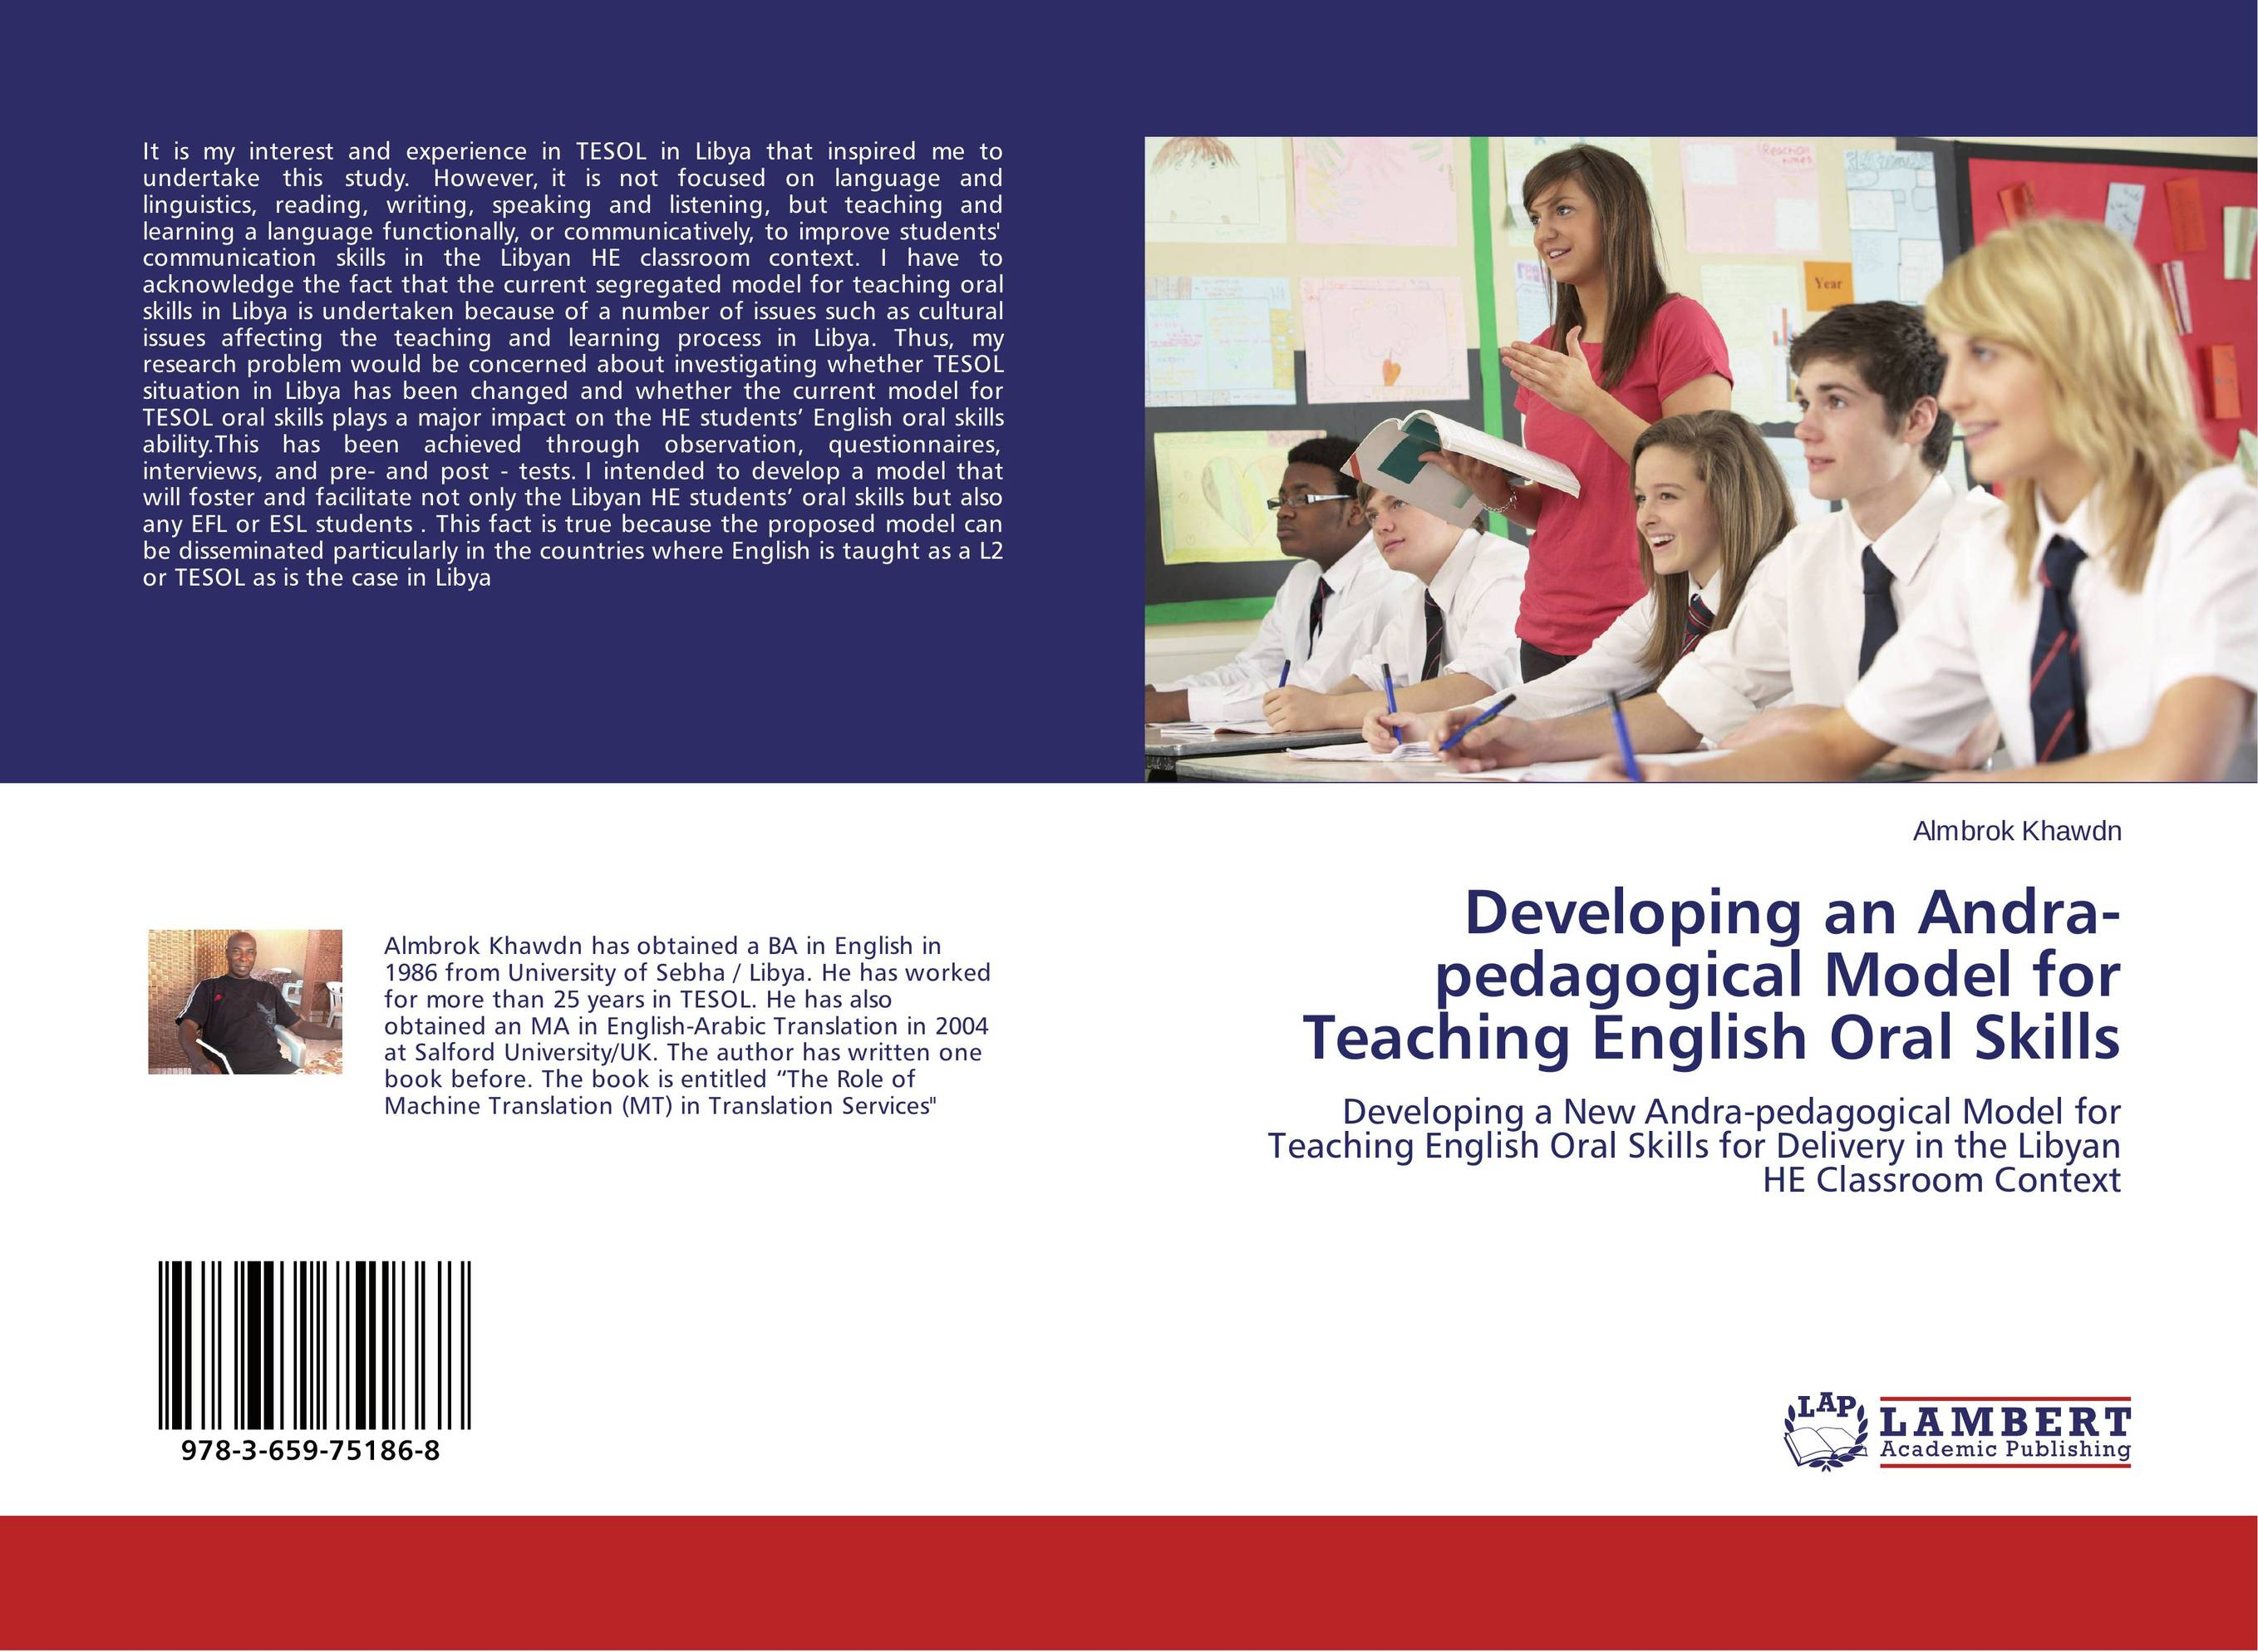 Developing an Andra-pedagogical Model for Teaching English Oral Skills a model for developing rating scale descriptors